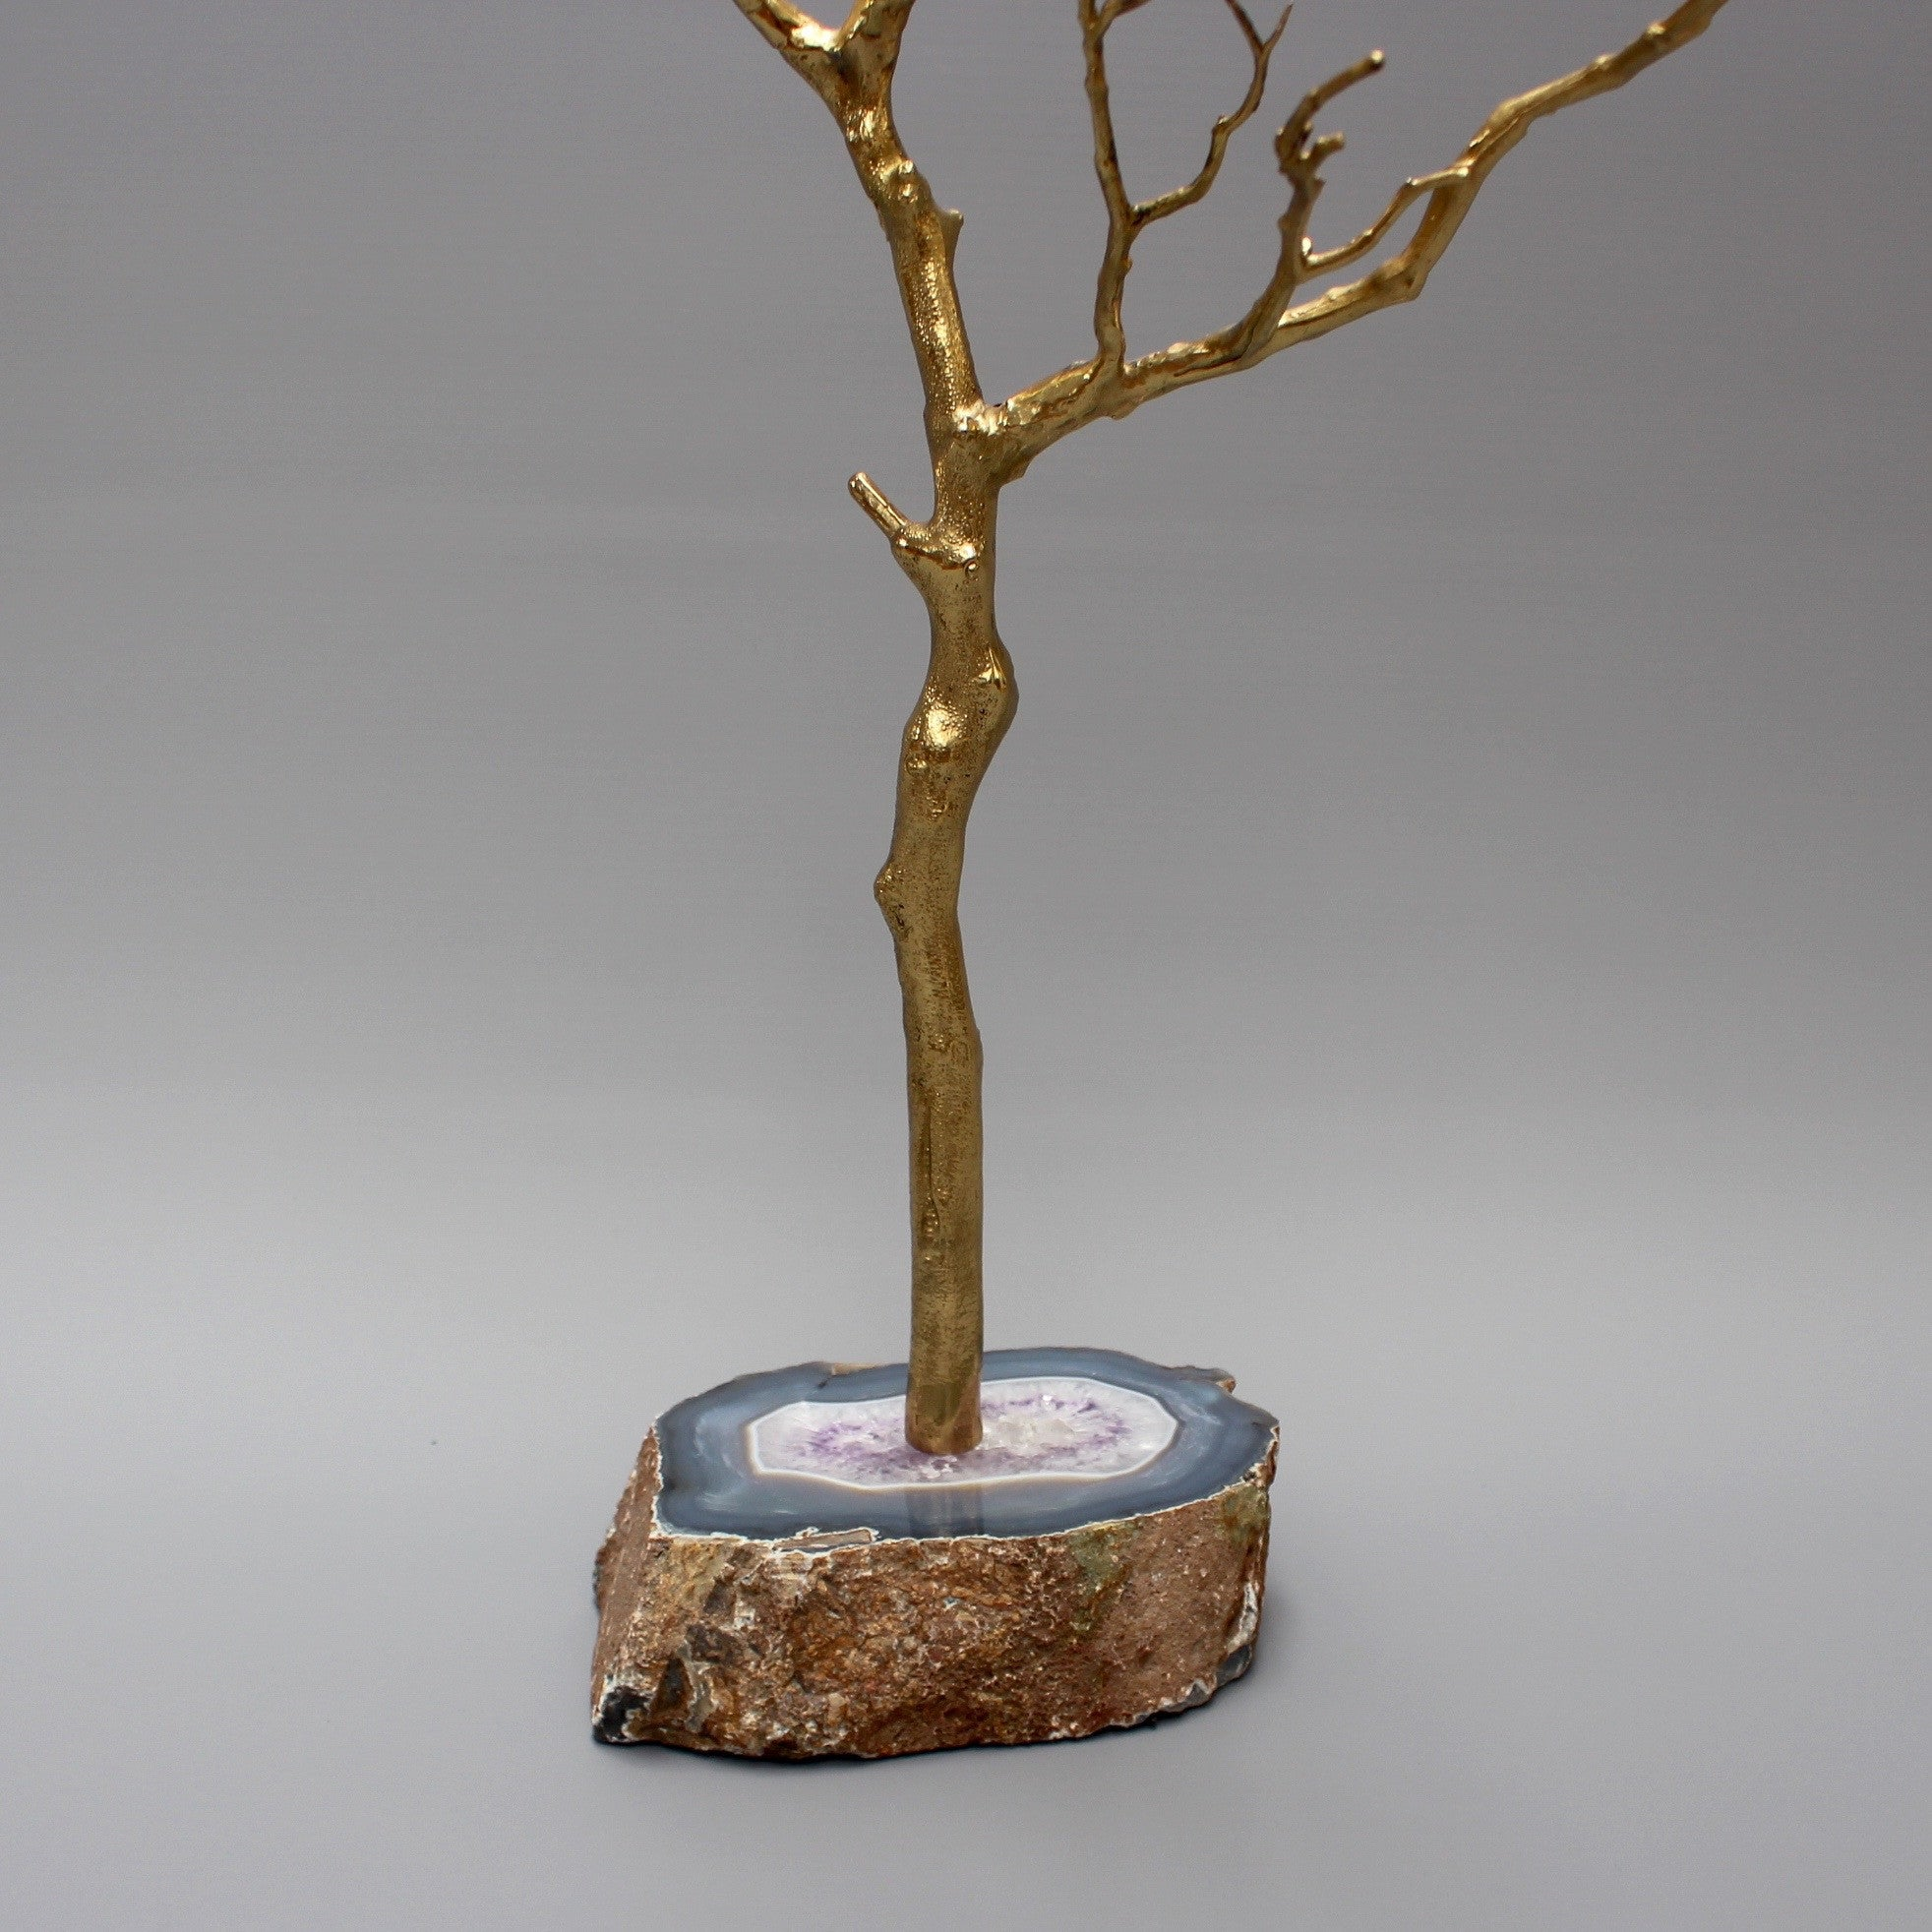 Large Brass and Agate Decorative Tree / Jewellery Display Tree